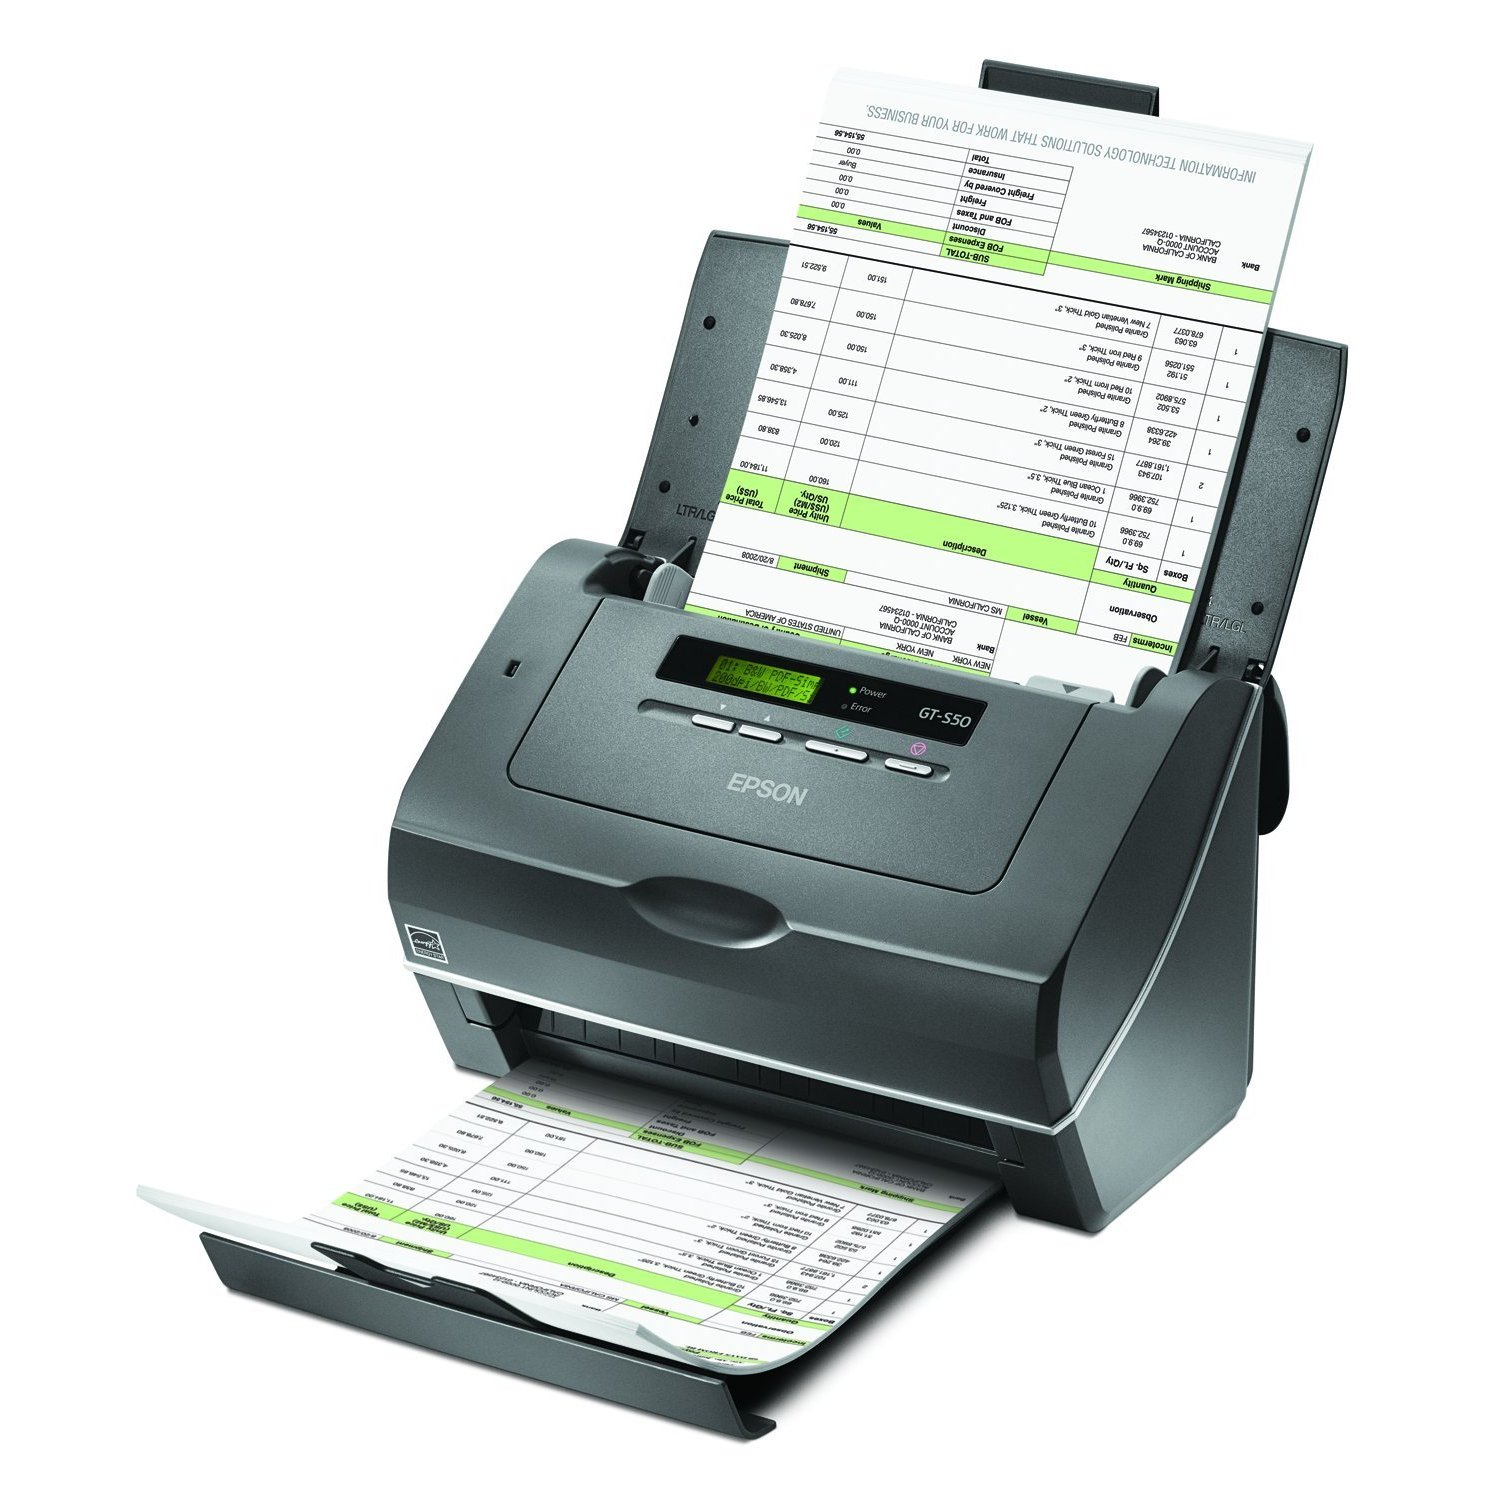 Epson scanner coupons